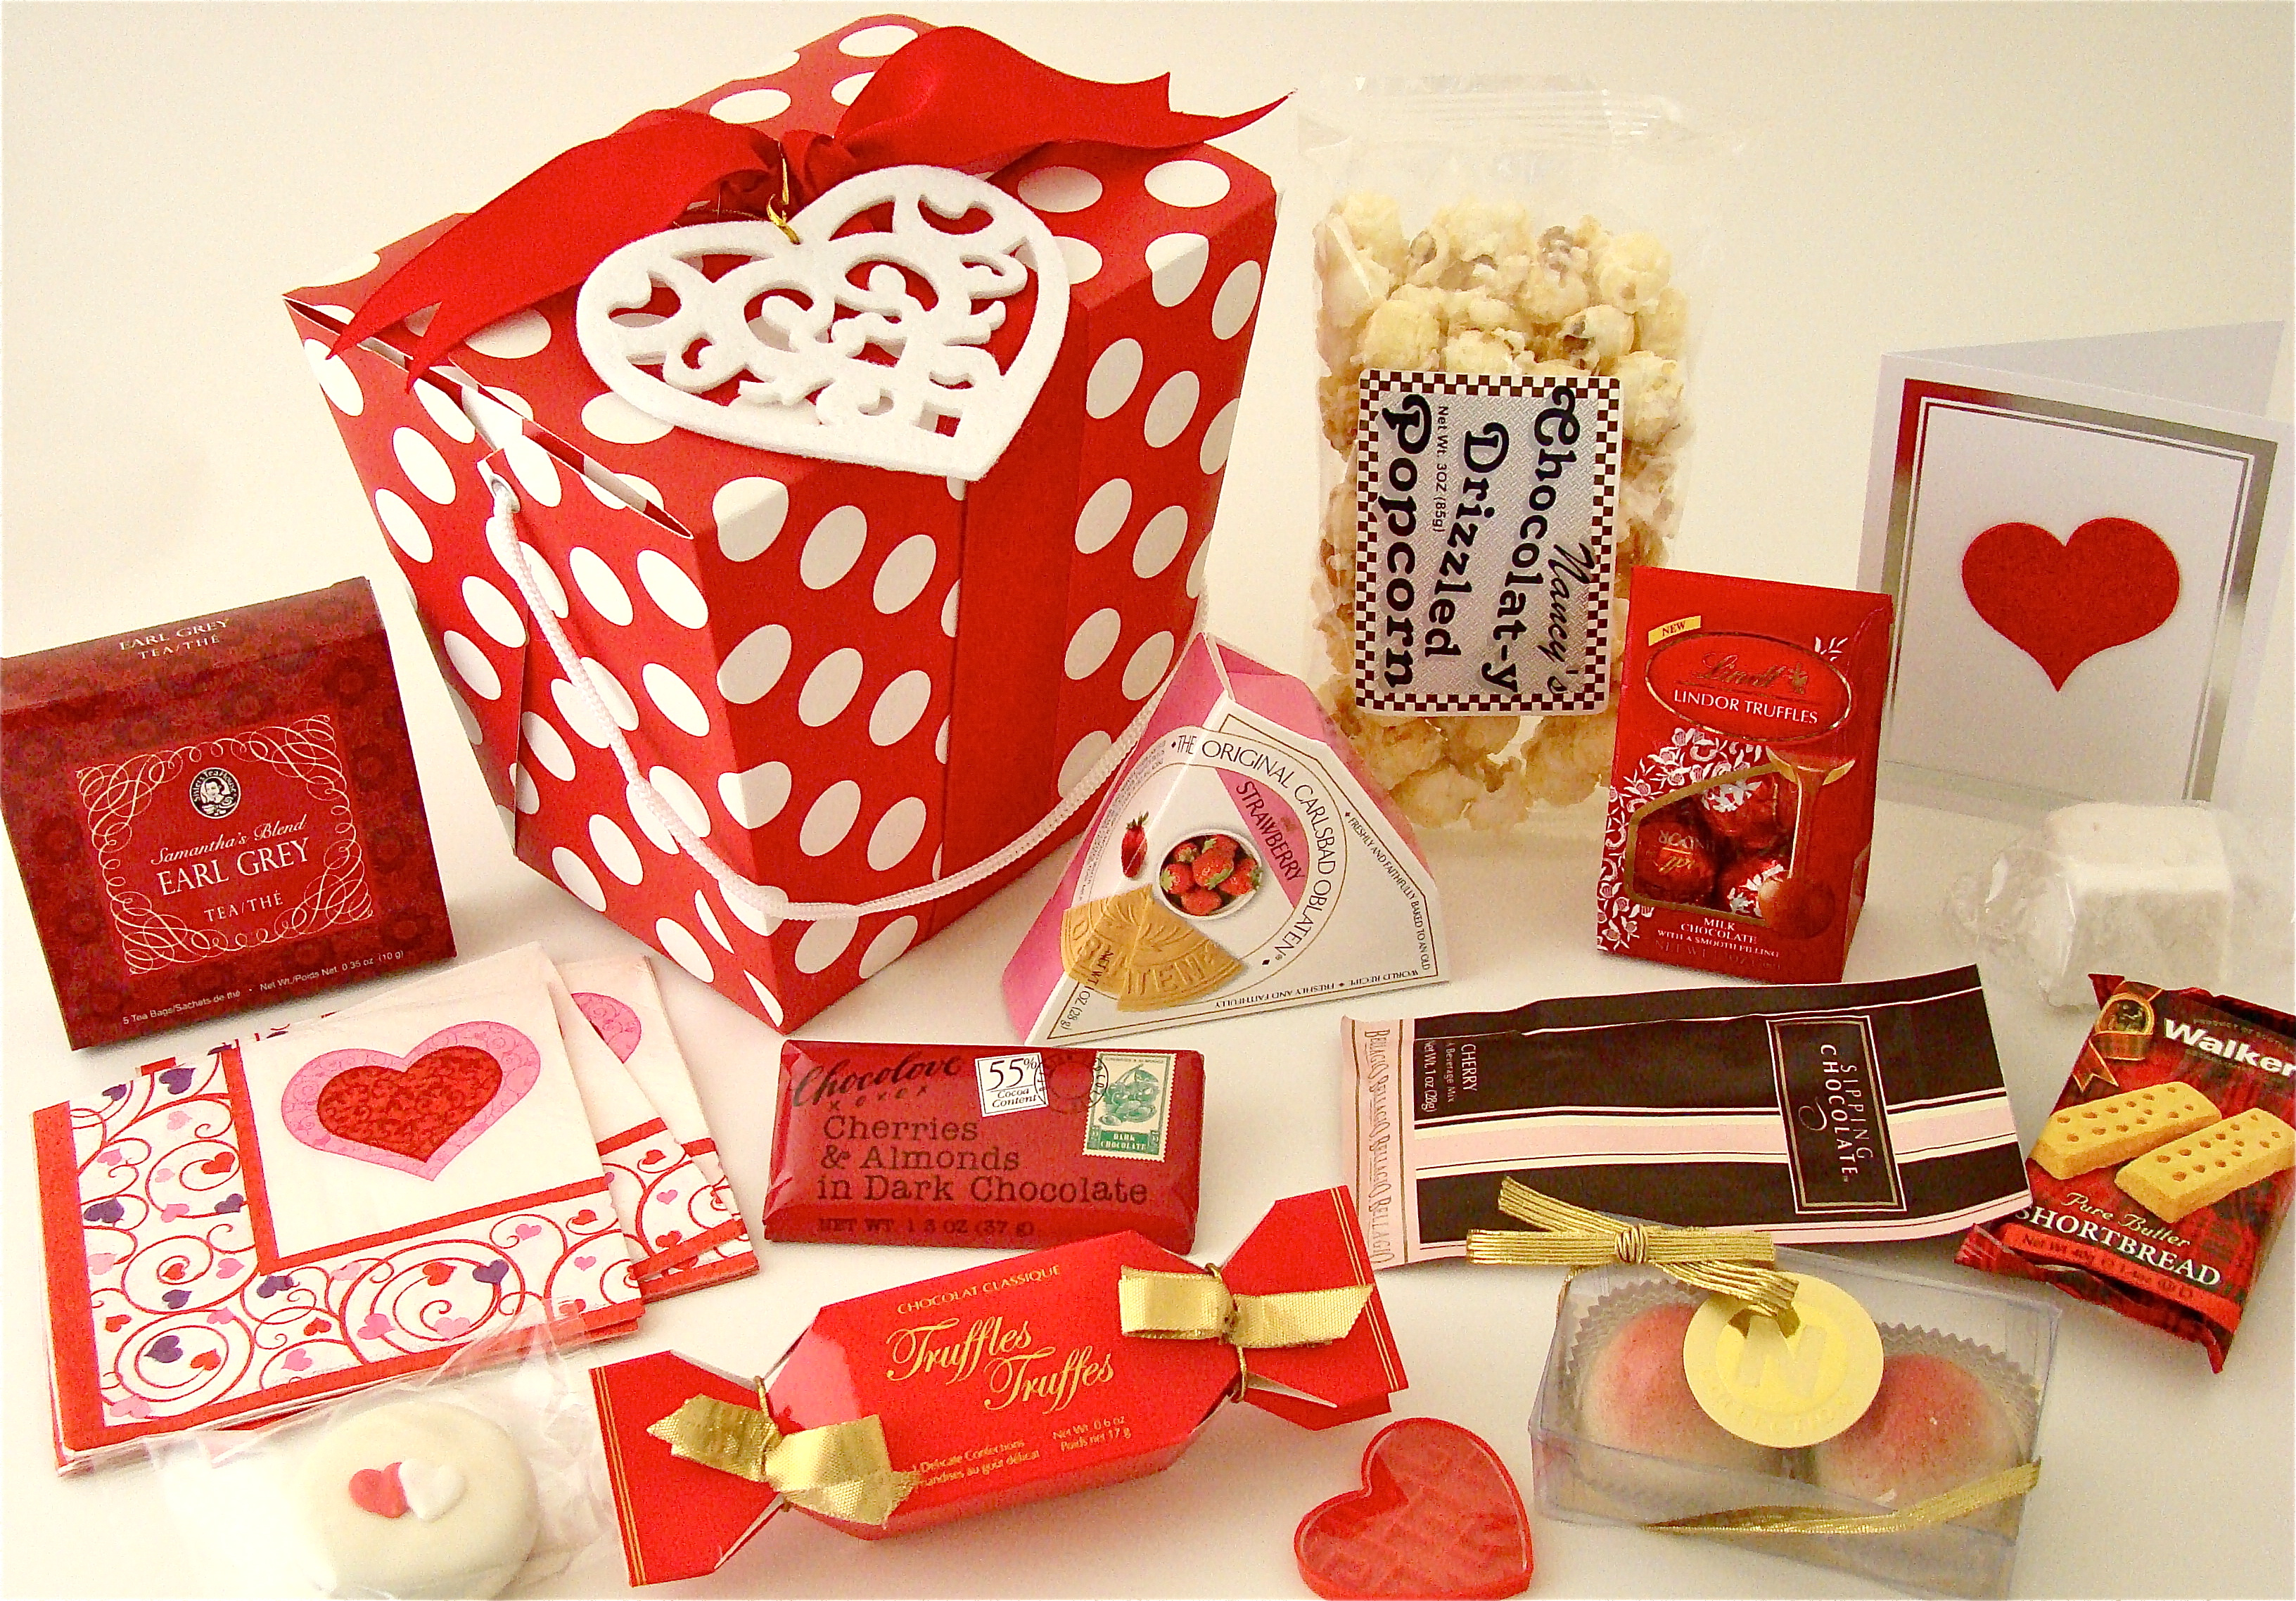 8 delightful gifts you can give your sweetheart on valentines day other than flowers realitypod